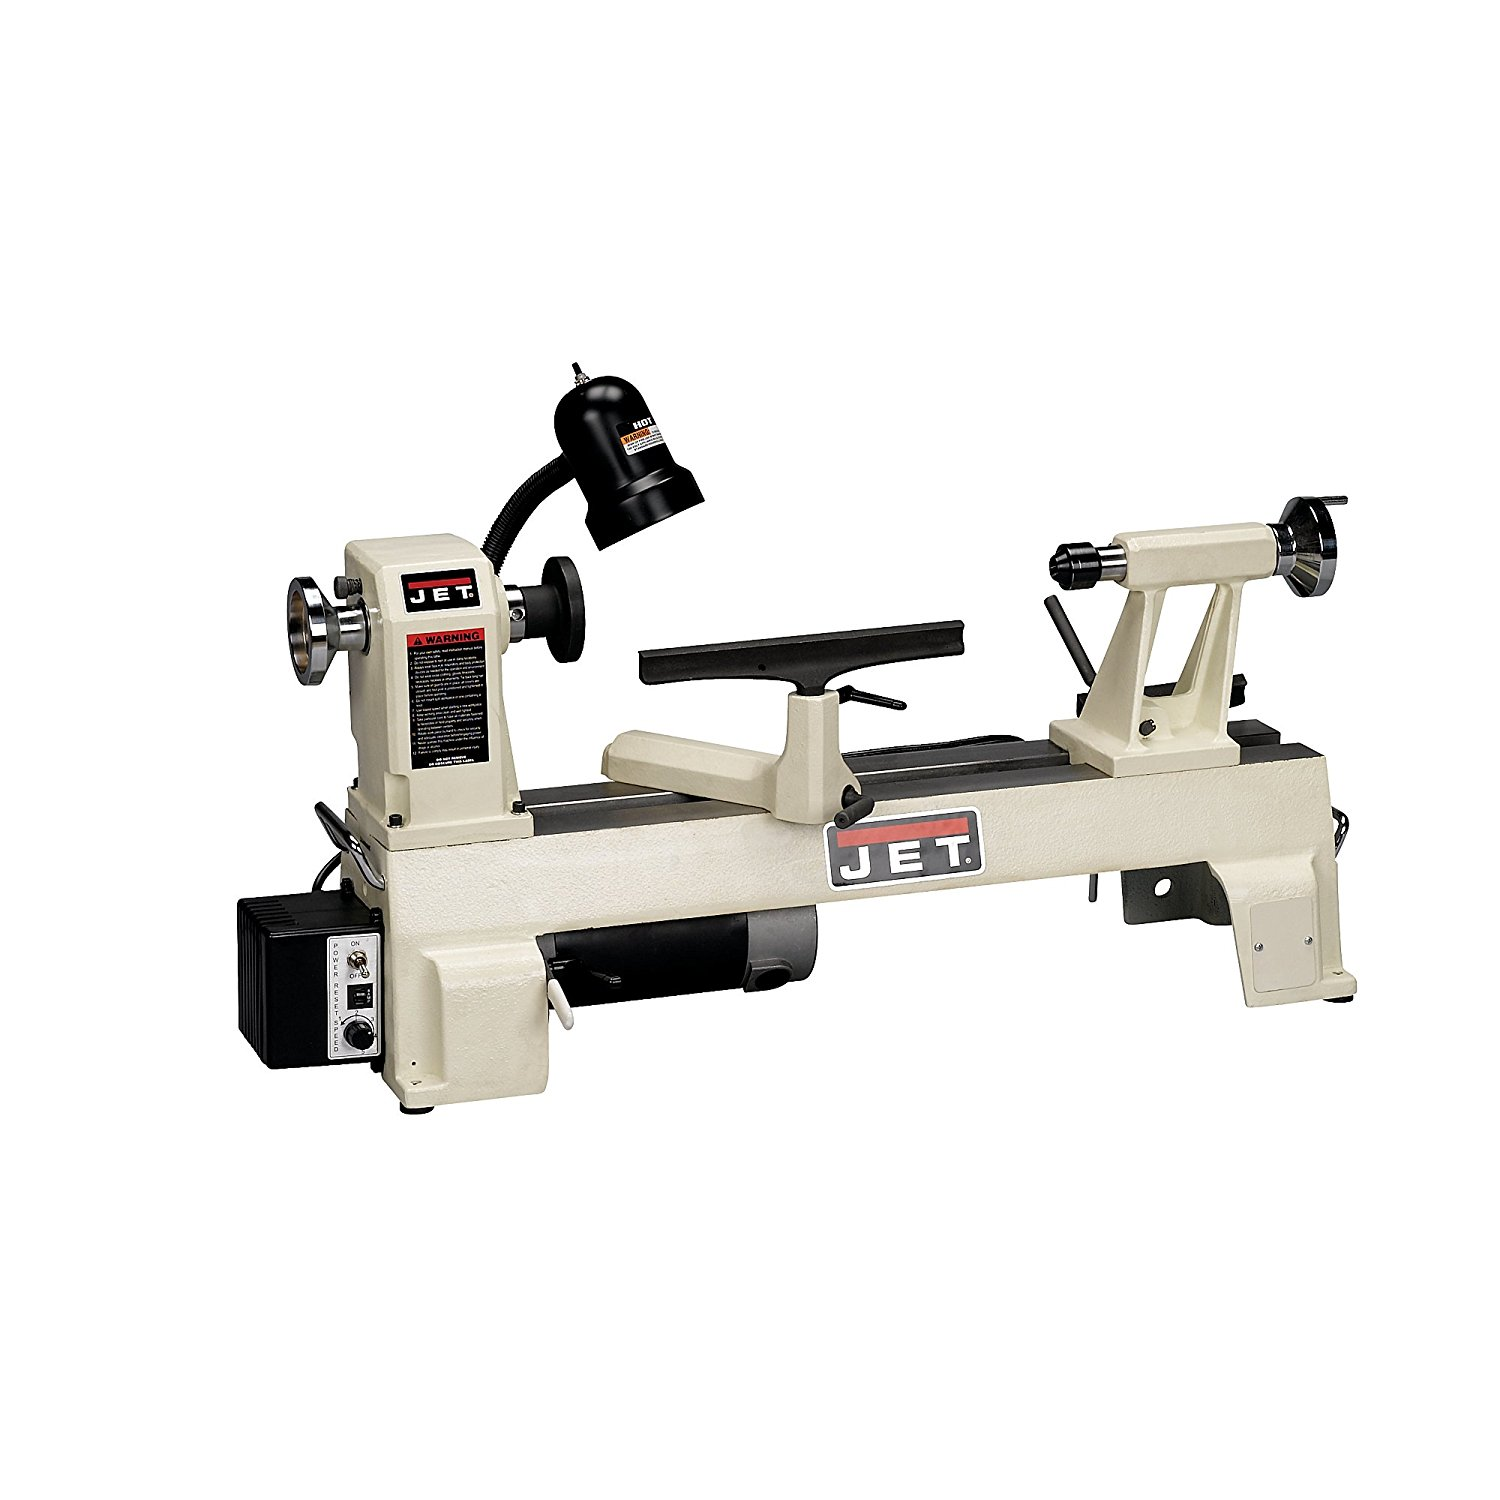 Jet 1221vs Lathe Review for Wood Bowl Turning - Turn A ...